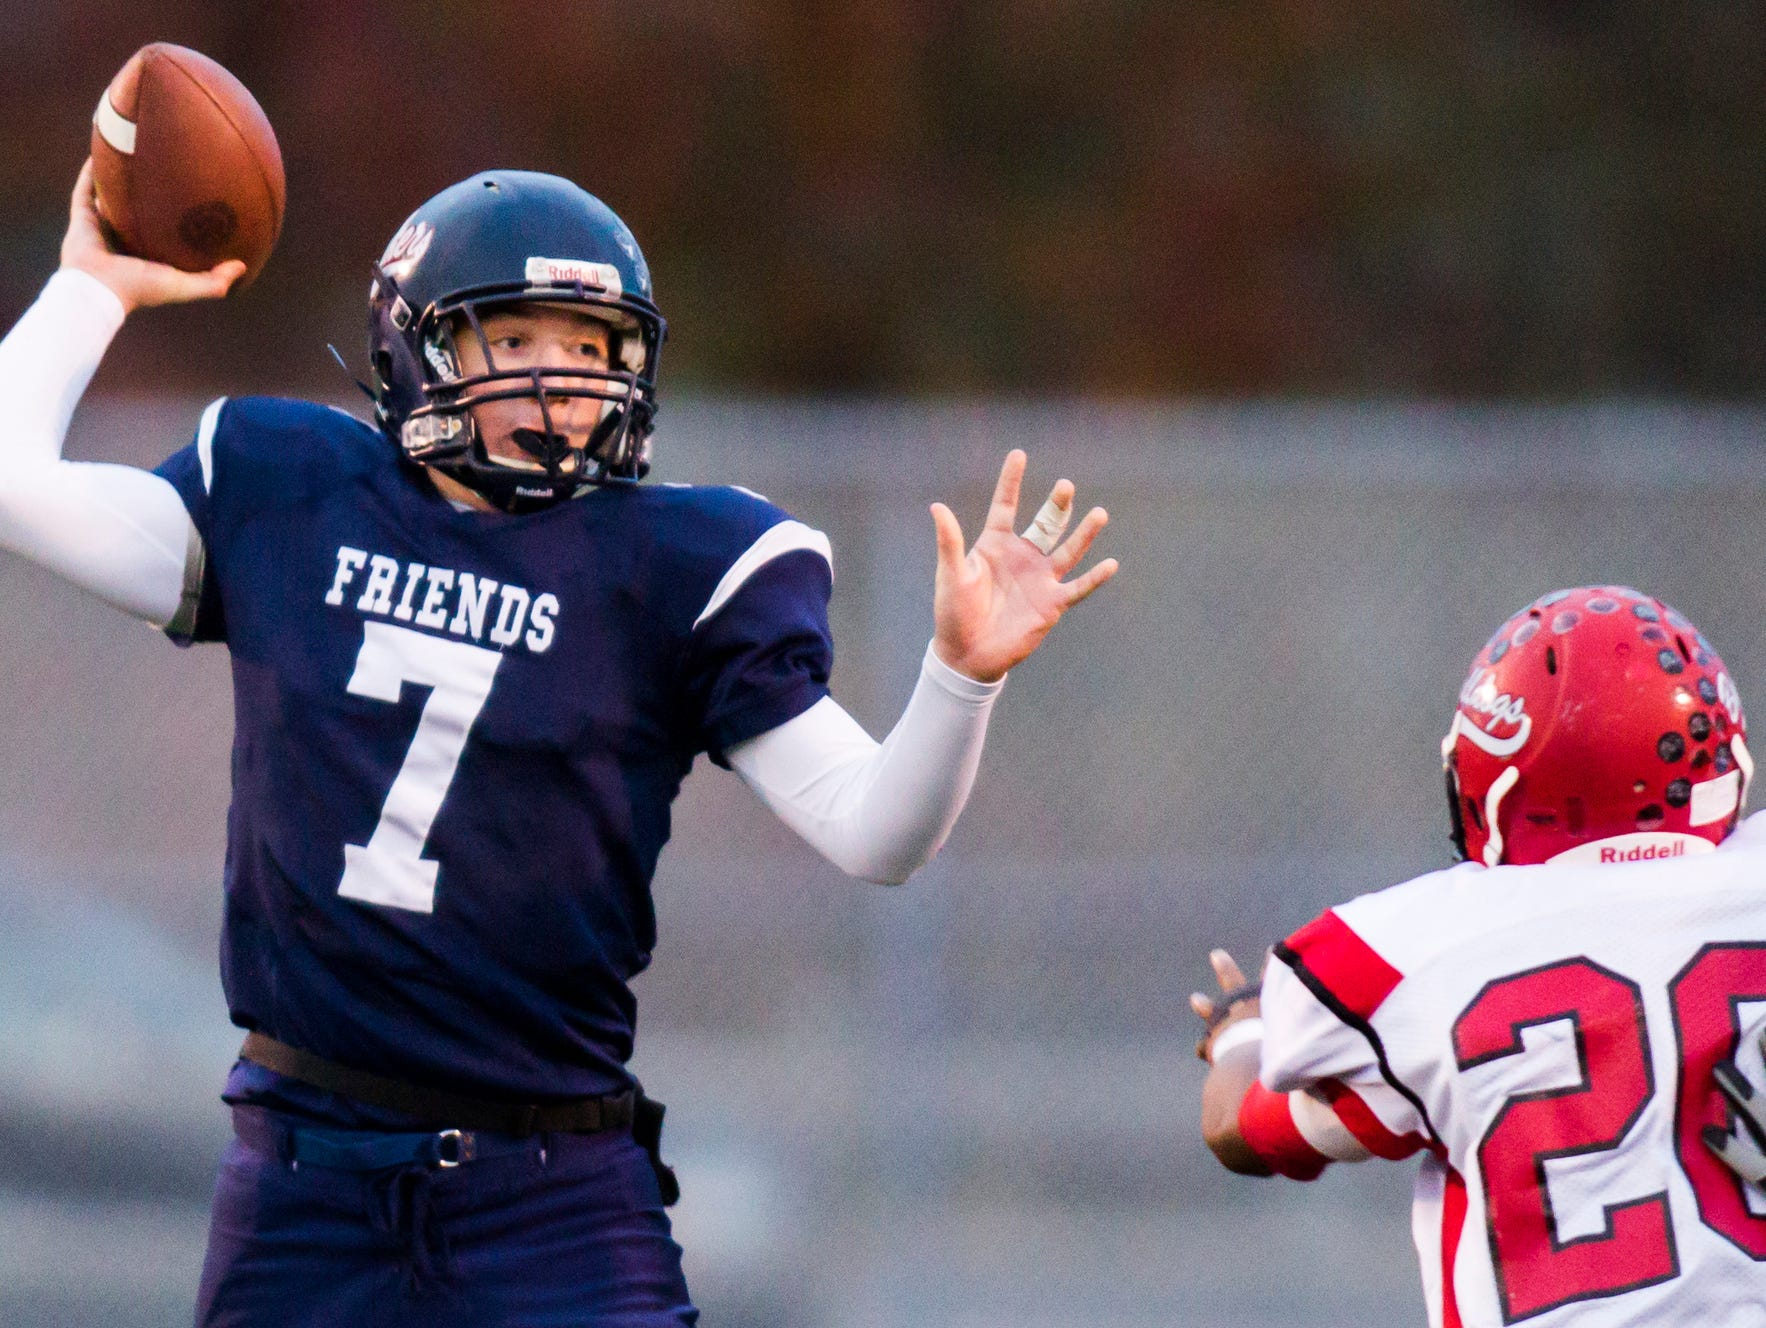 Quarterback Justin Beneck, shown against Laurel in last year's DIAA Division II semifinals, has helped Wilmington Friends to a 7-0 start this season.